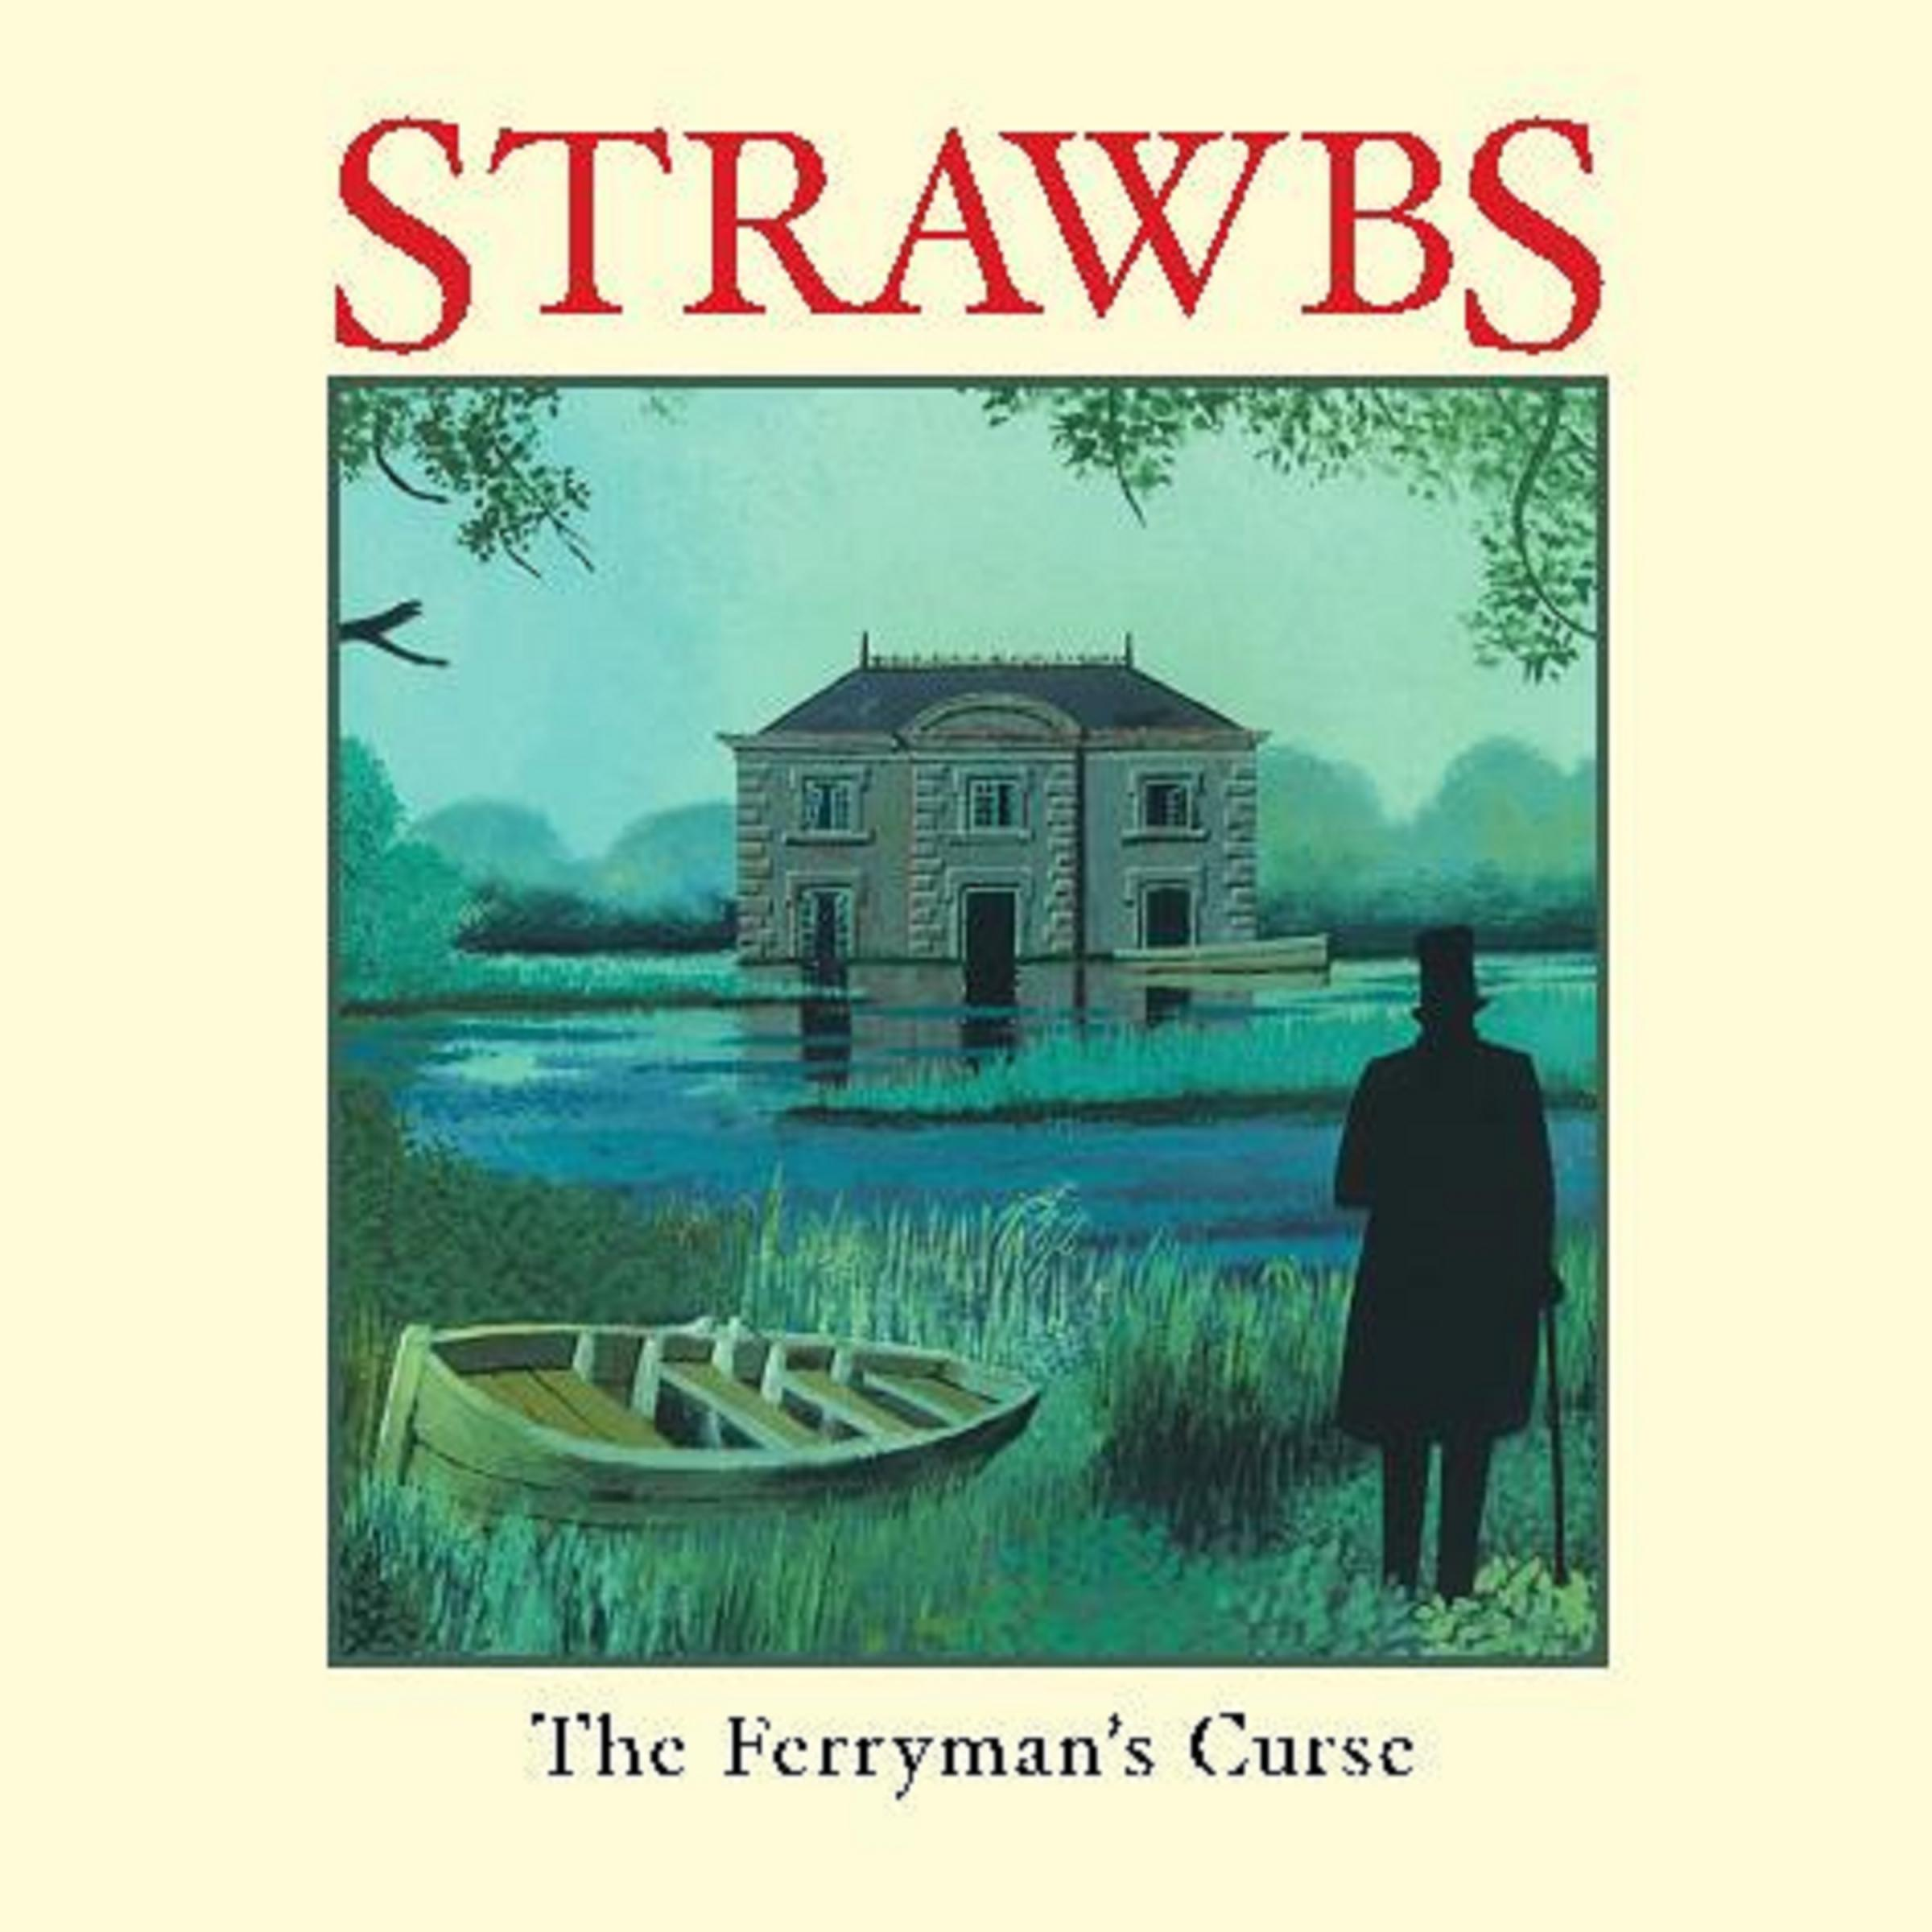 The Ferryman's Curse by Strawbs